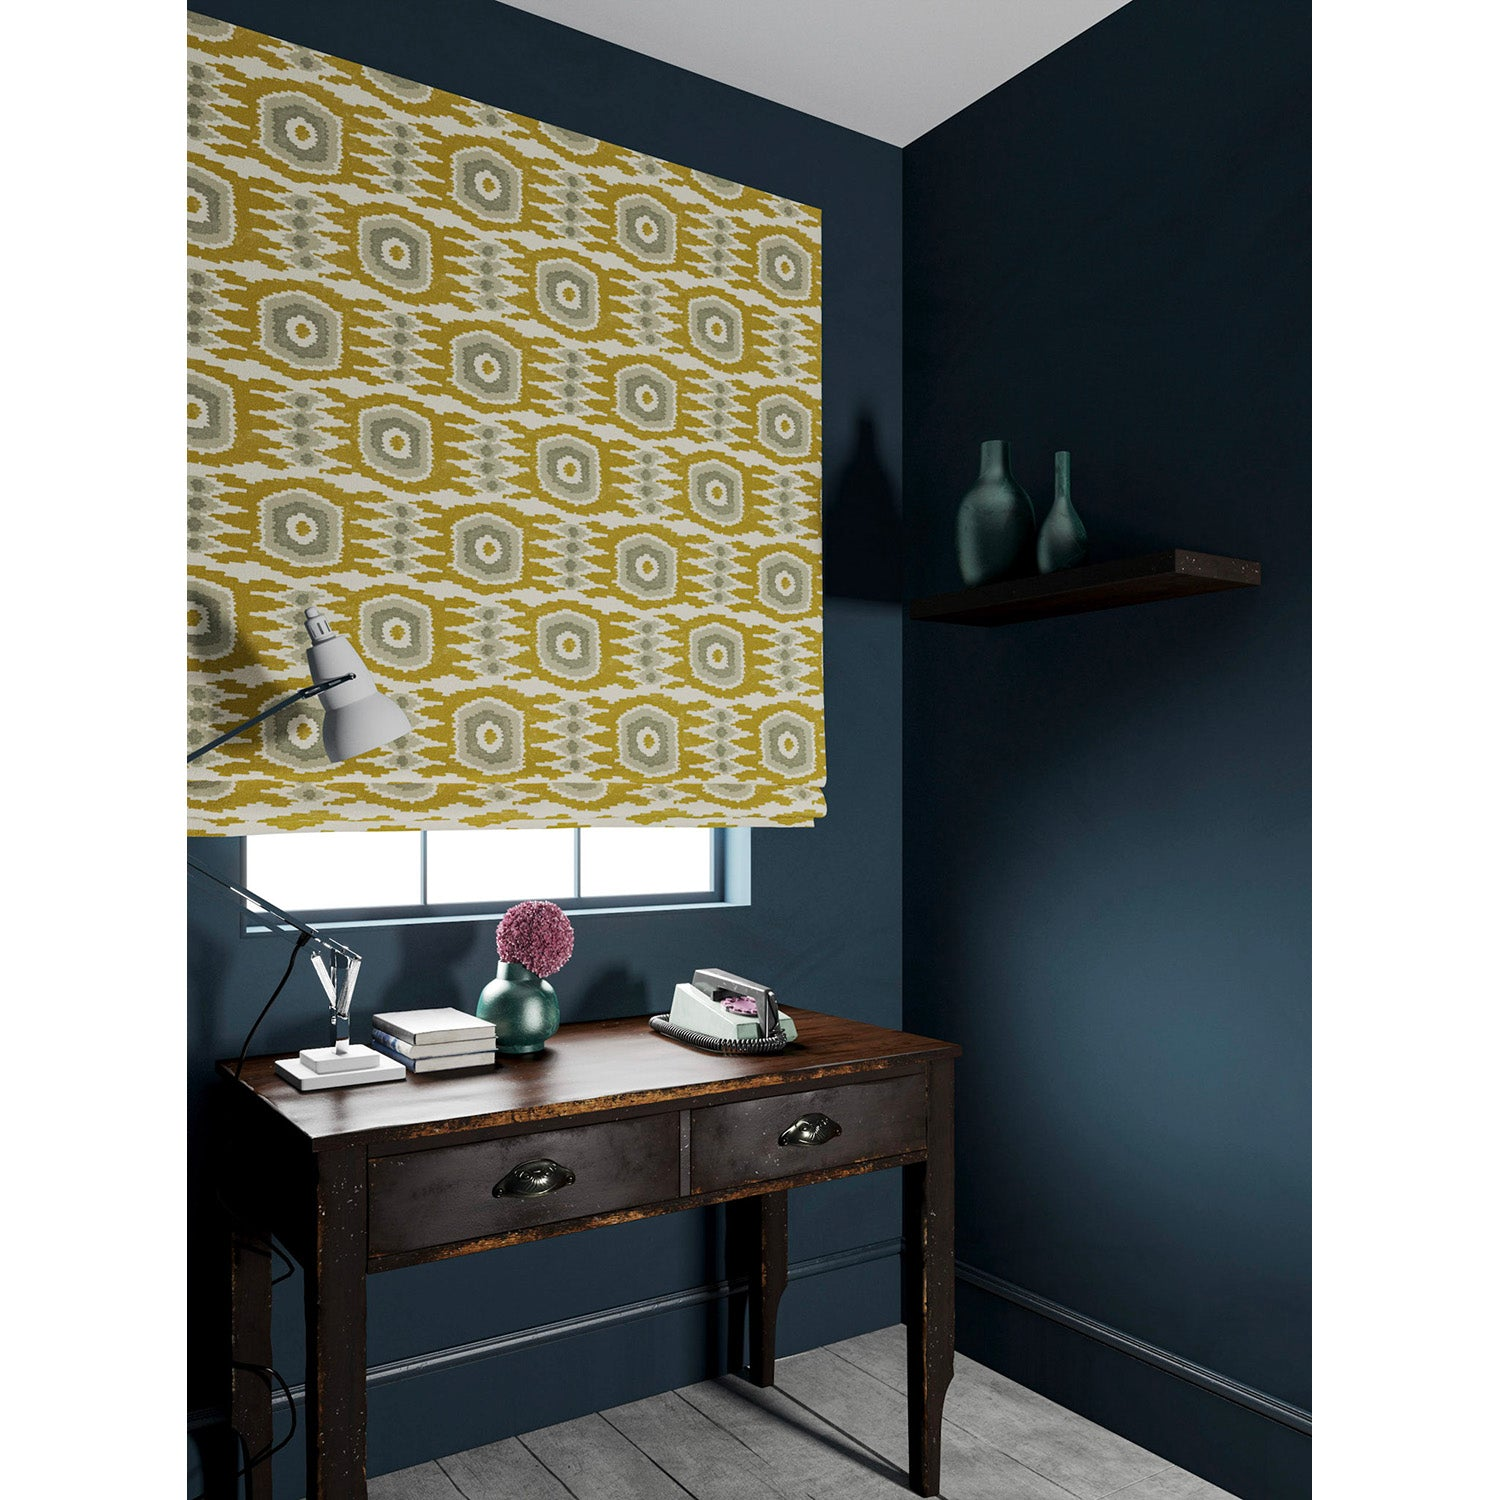 Velvet blind in a ochre and grey velvet fabric with stain resistant finish and abstract print